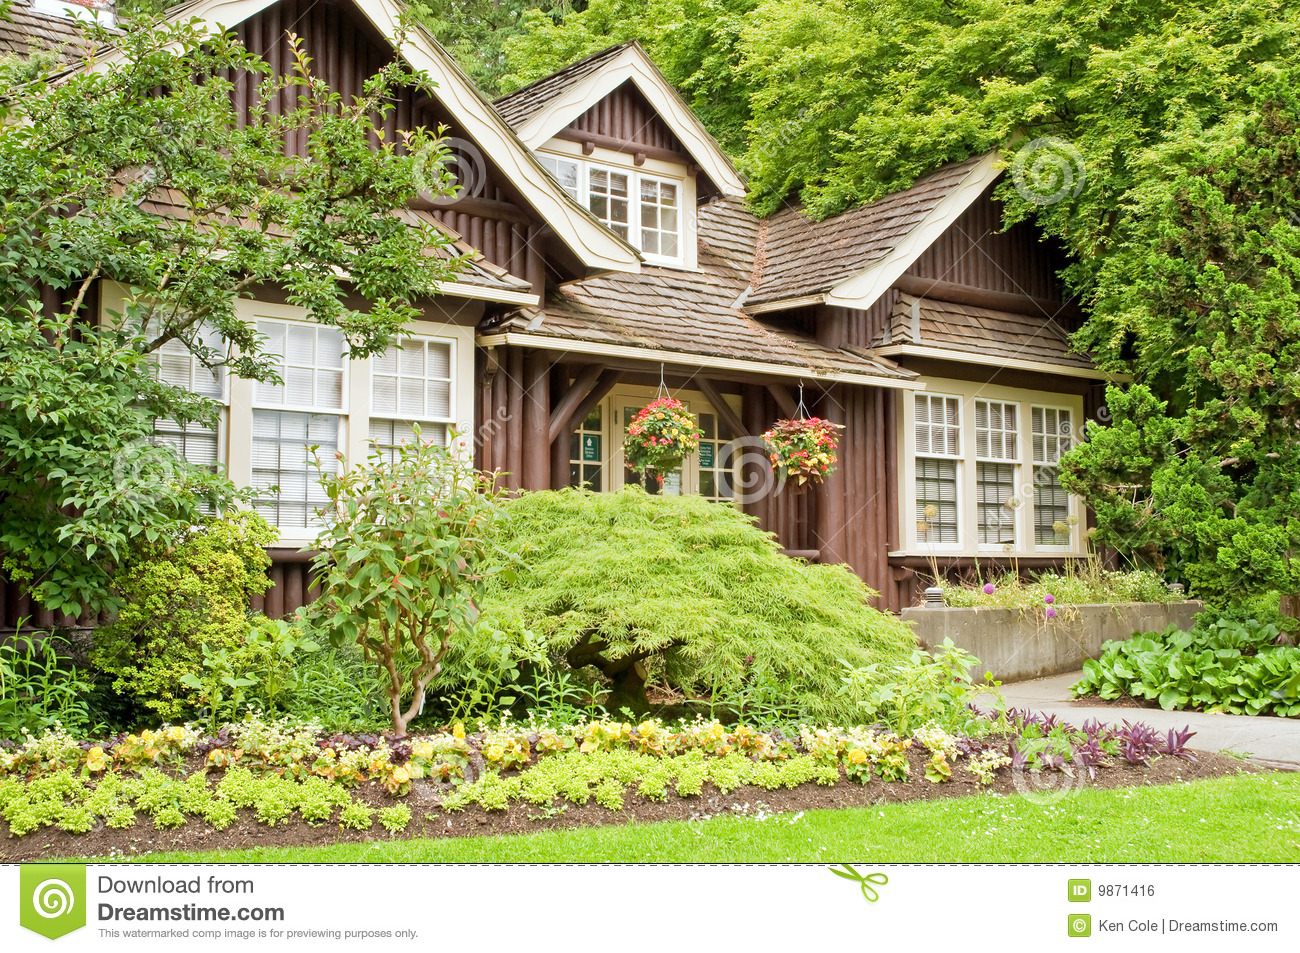 Landscaped Log Cottage In Woods